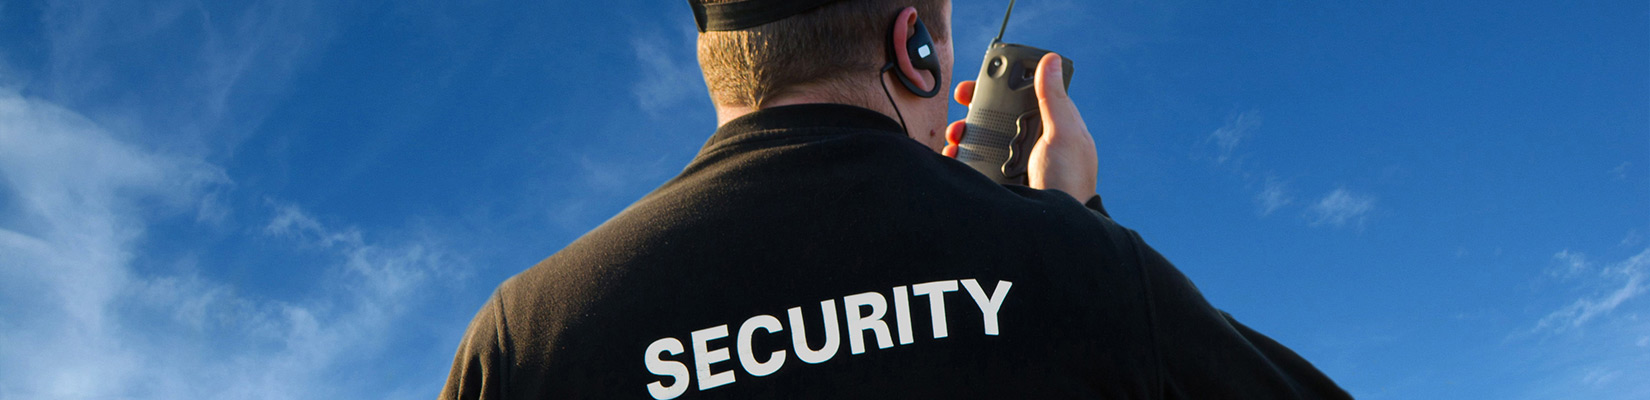 Static and Manned Guarding Services in Bury St Edmunds and Cambridge